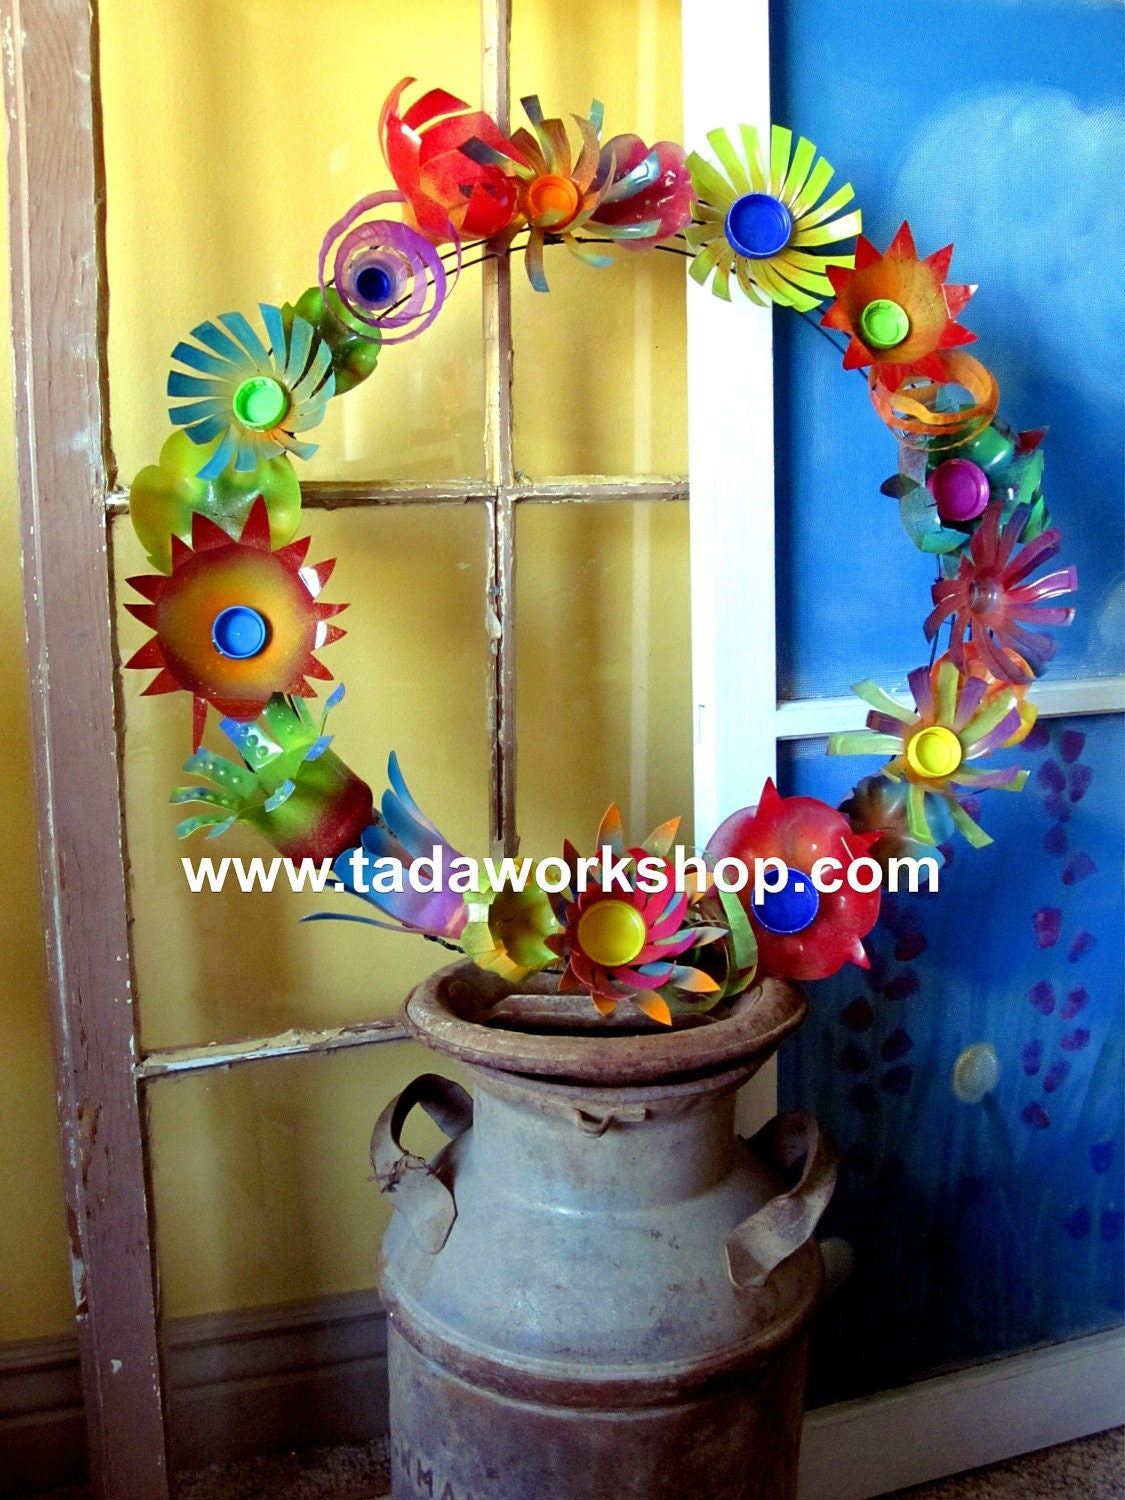 Upcycled Flower Wreath Made From Recycled Plastic By